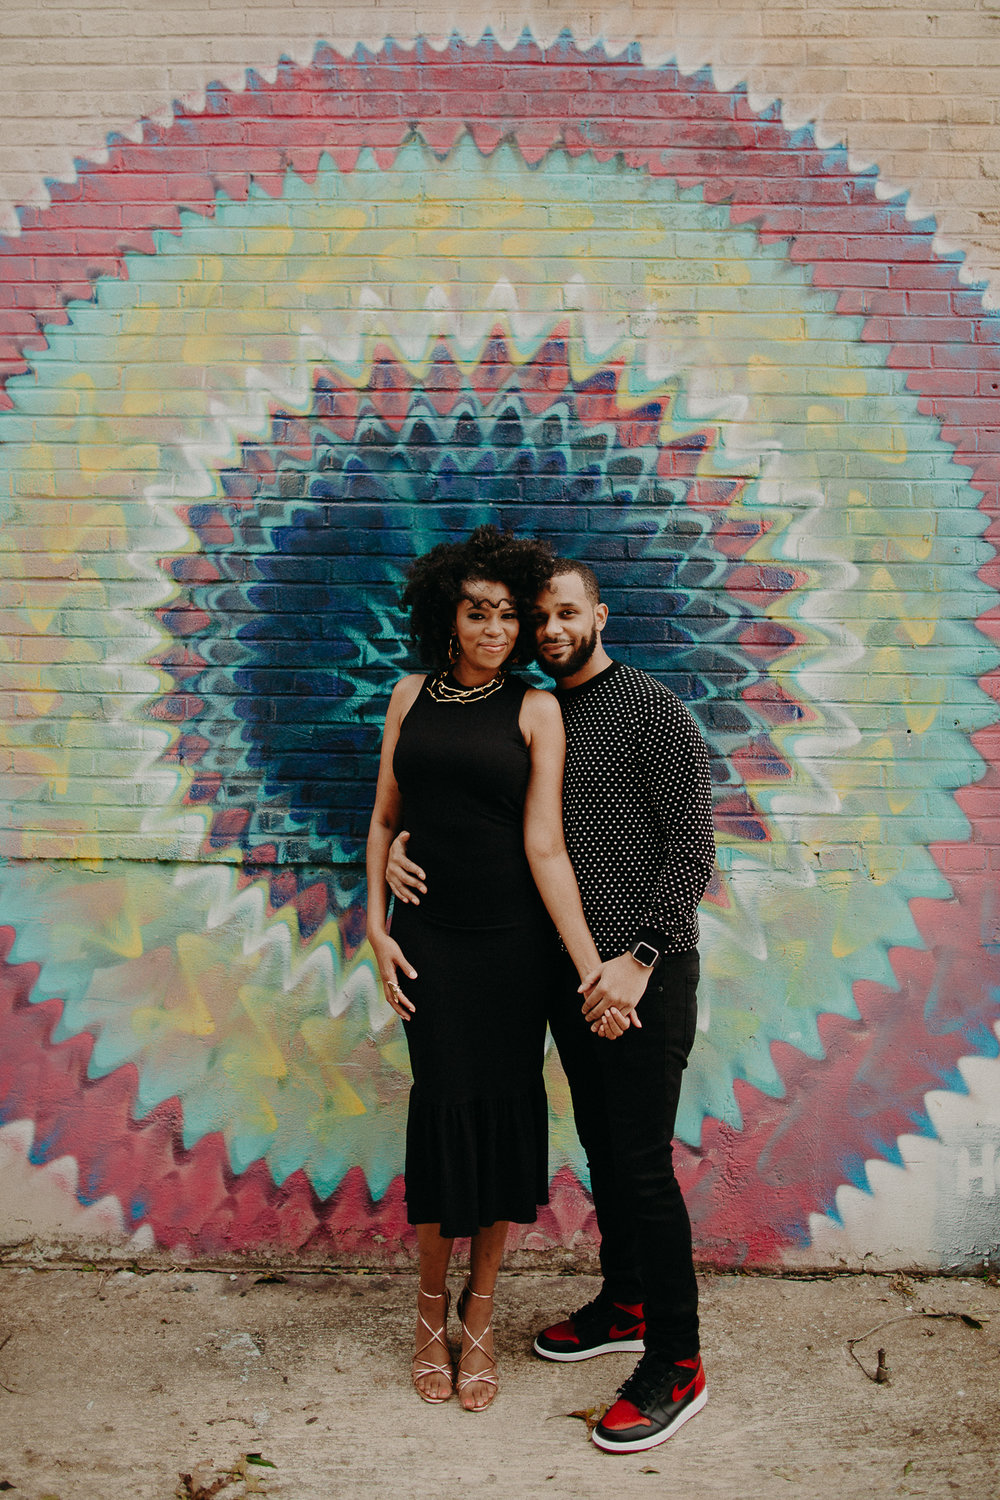 krog_street_atlanta_walls_engagement_ava+colin.JPG